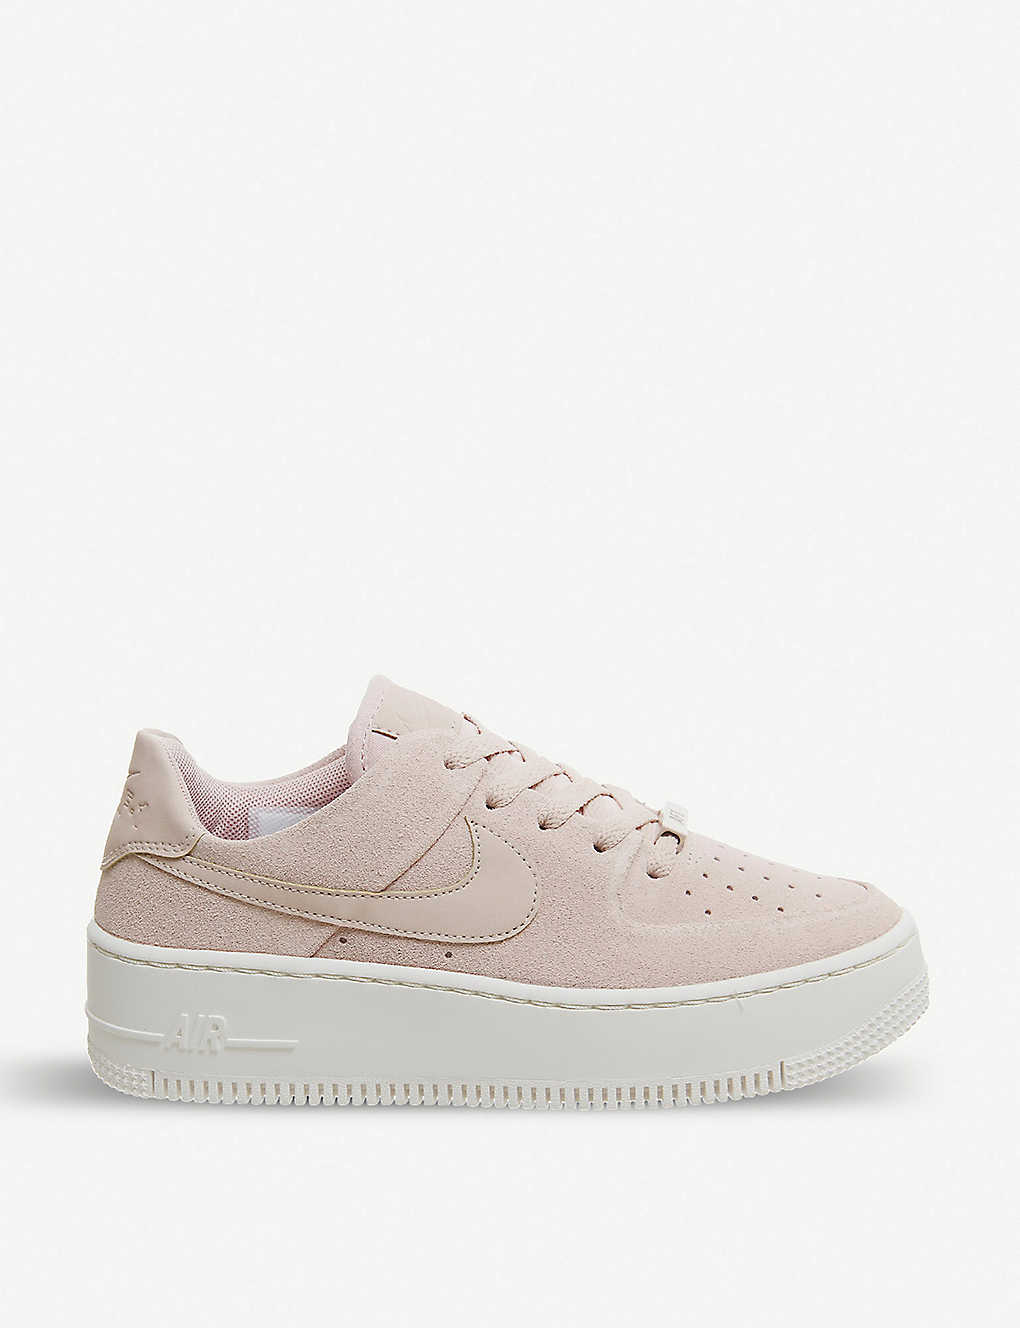 factory price e23cd 86341 Air Force 1 Sage suede trainers - Particle beige ...